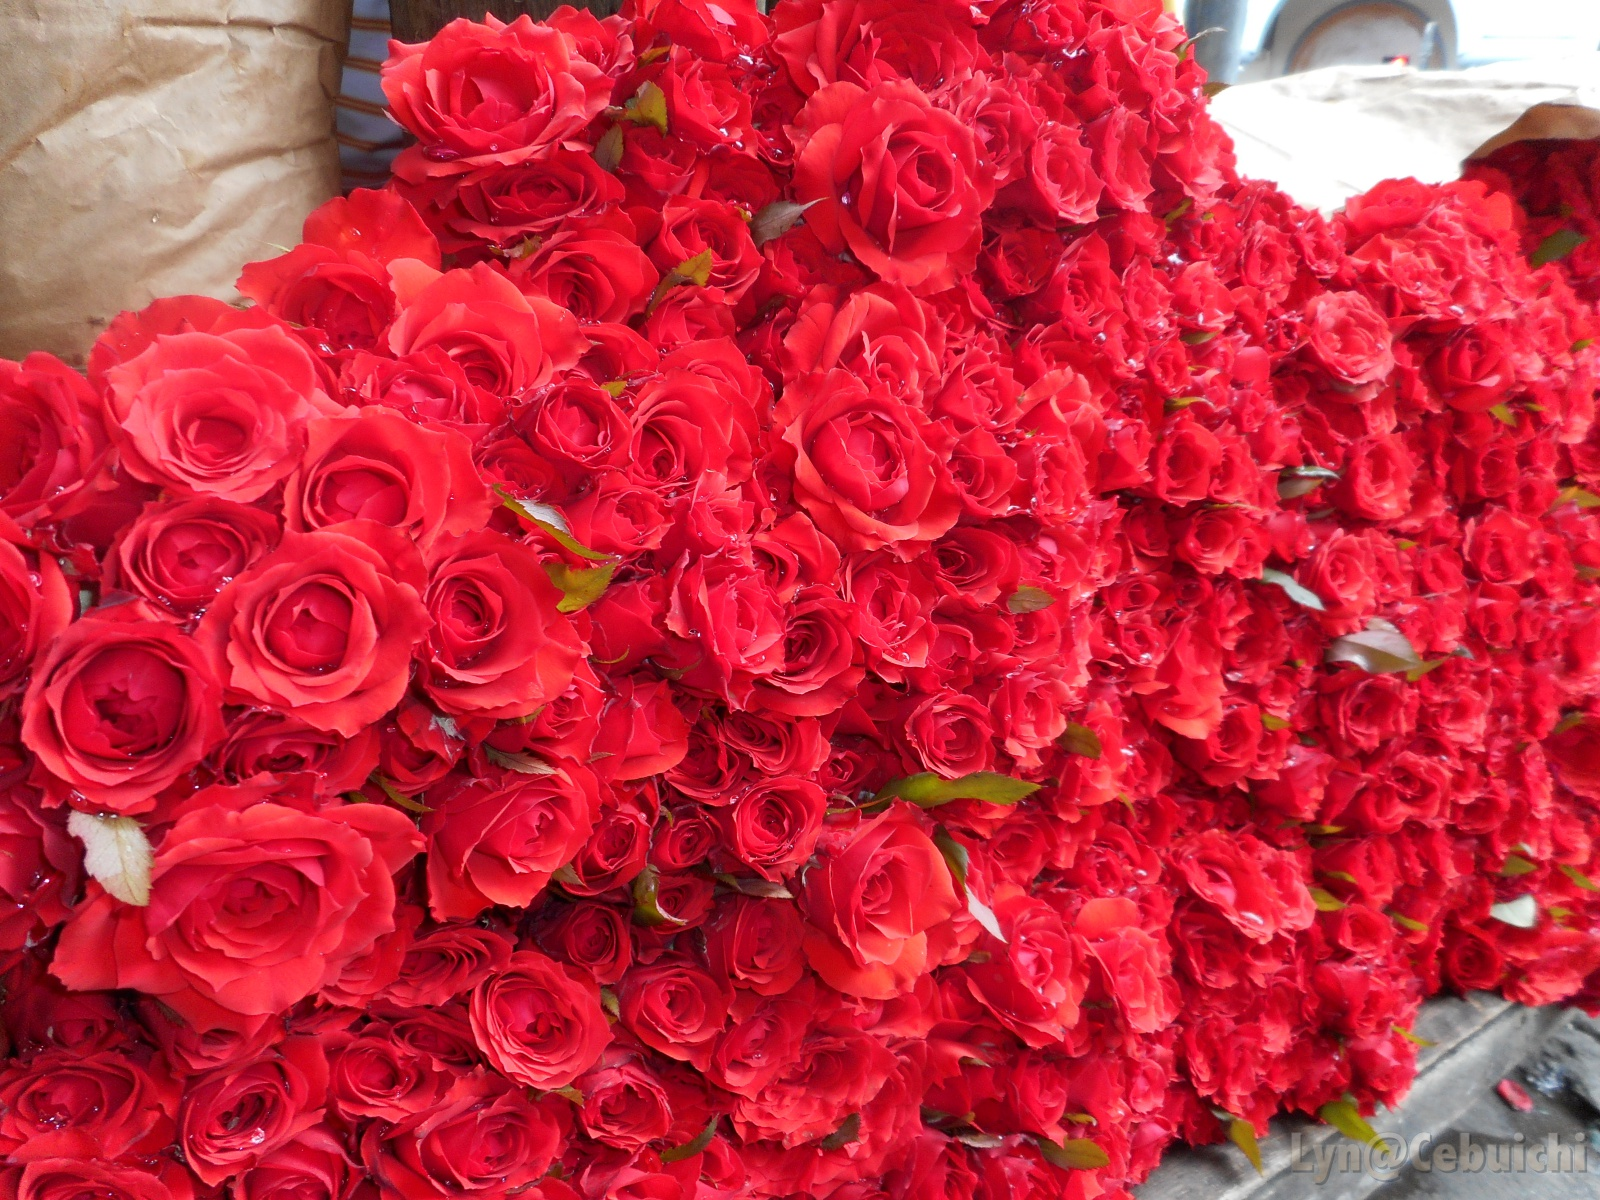 A new batch of fresh roses arrived earlier that morning.